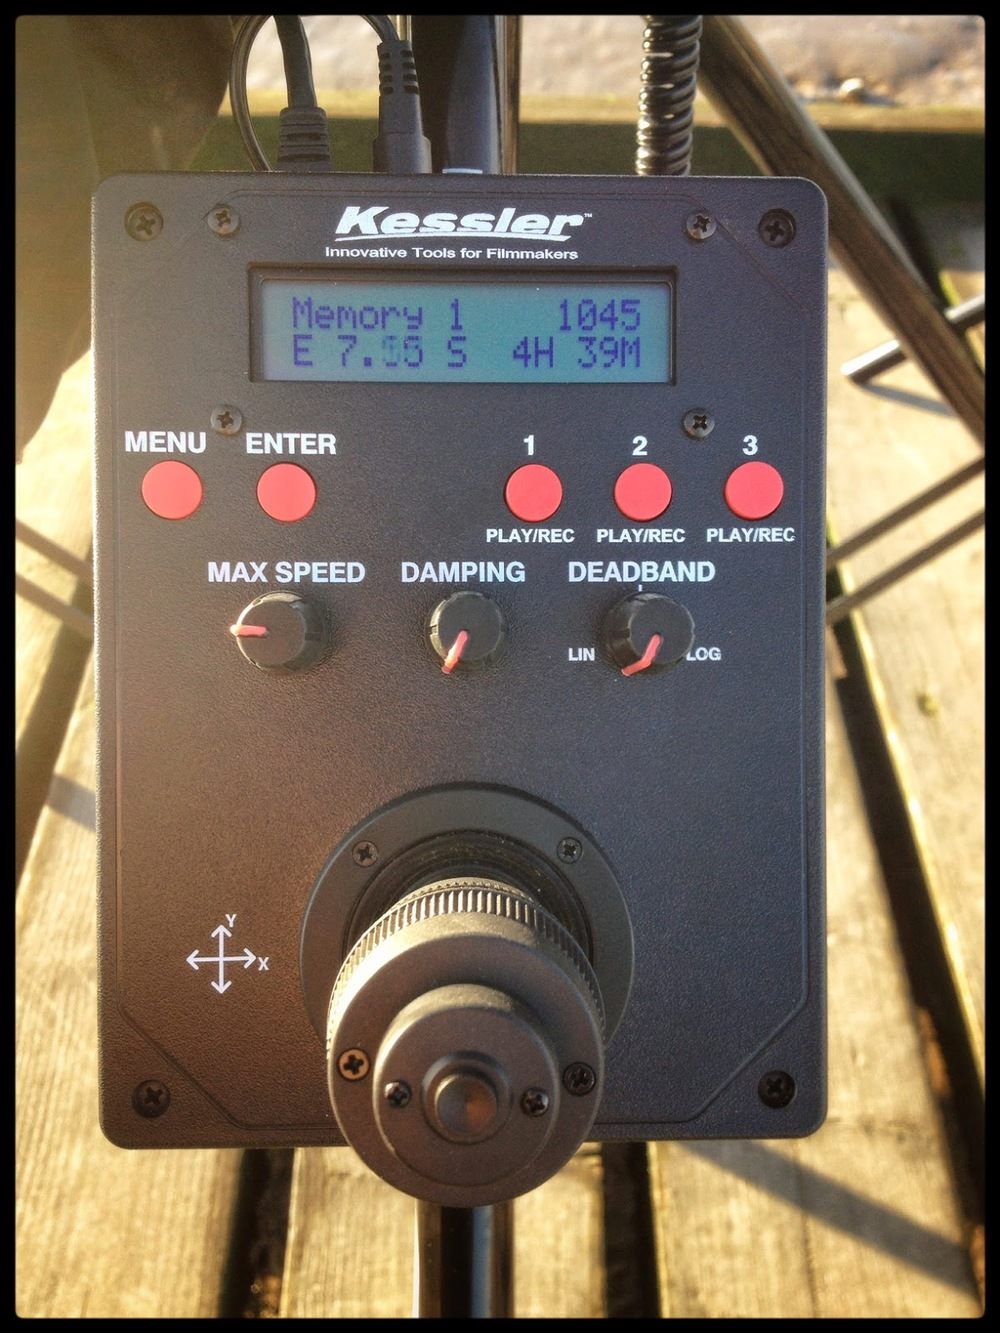 Kessler crane timer oracle controler control count down timelapse uk england